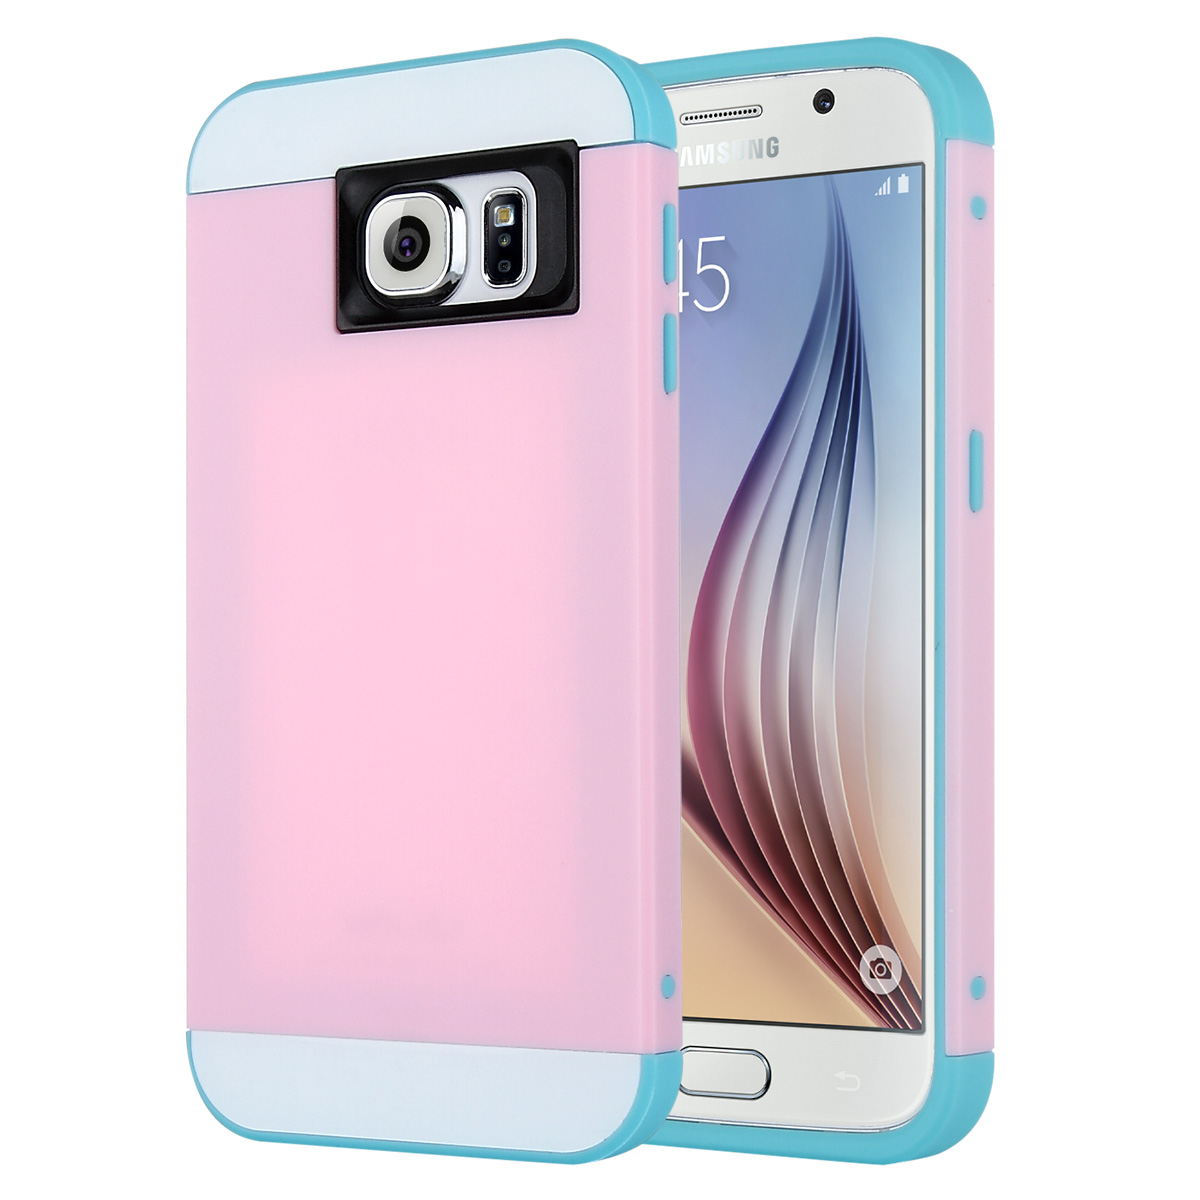 ULAK Galaxy S6 Case, S6 Case, 2in1 Hybrid Dual Layer Slim Protective Case Cover for Samsung Galaxy S6 (Plastic Hard Shell and Flexible TPU)